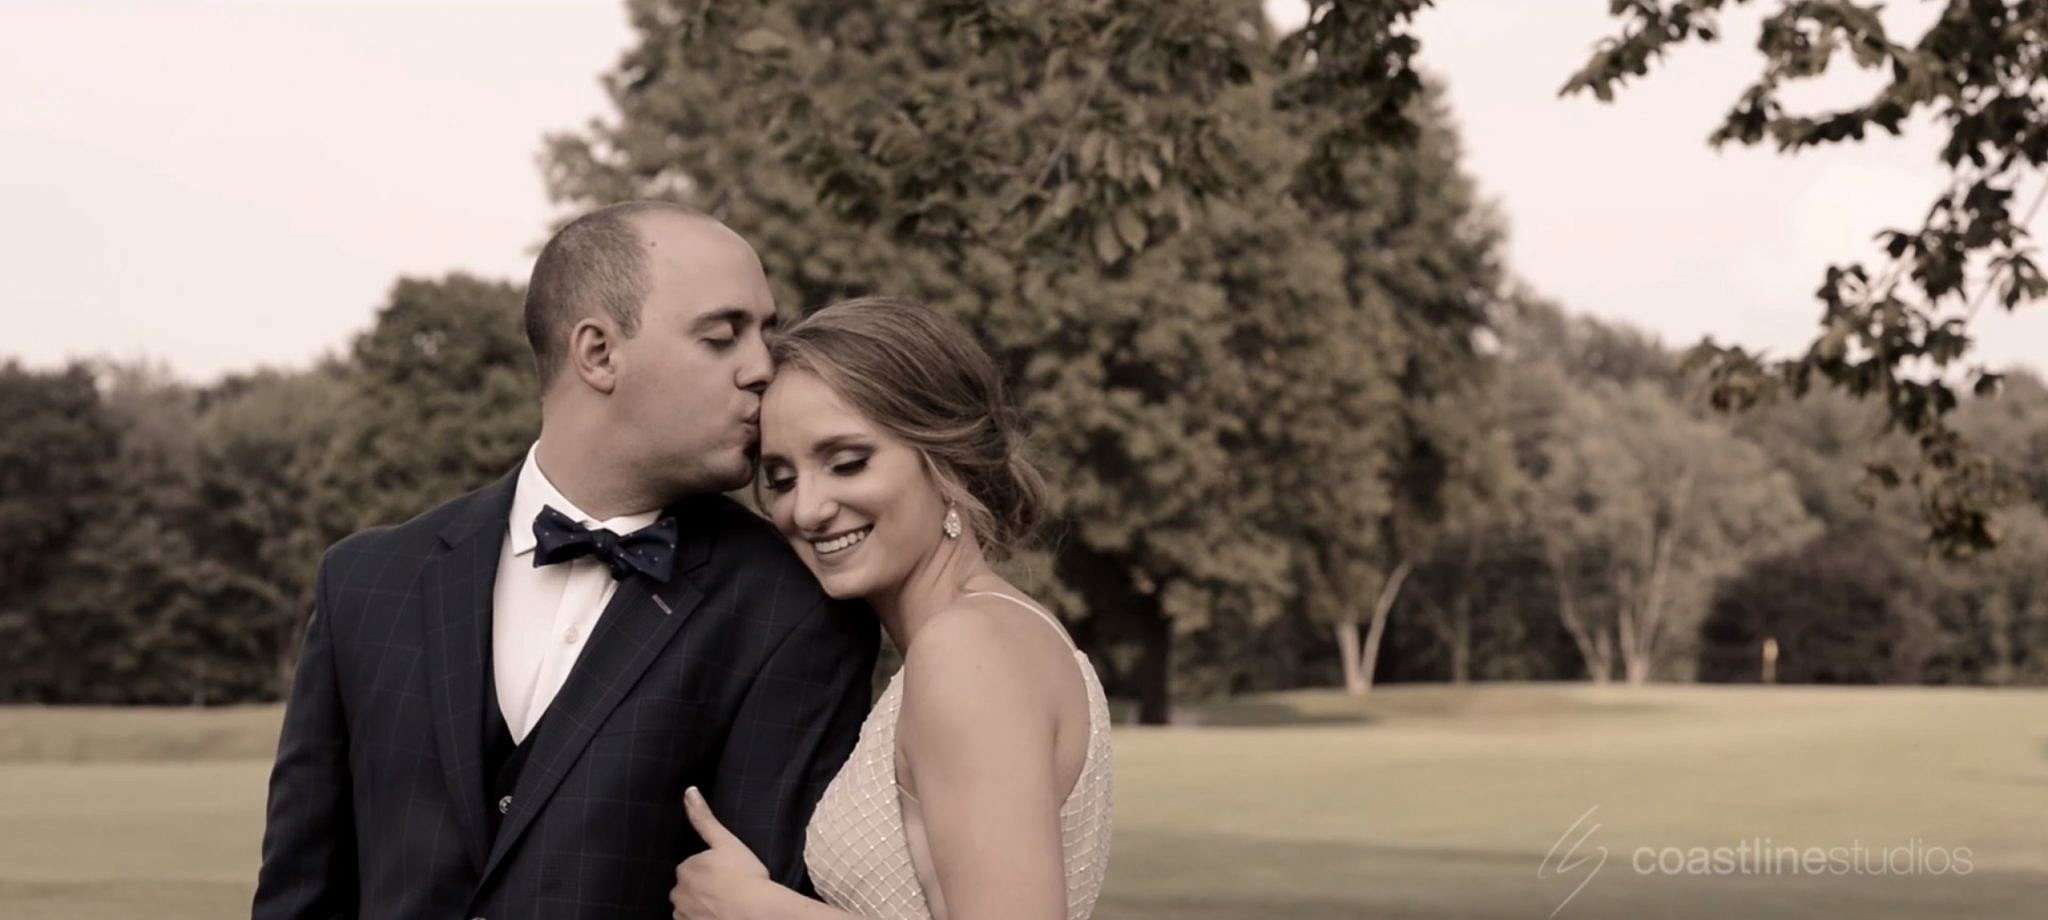 Samantha + Zachary's Wedding Highlight Film